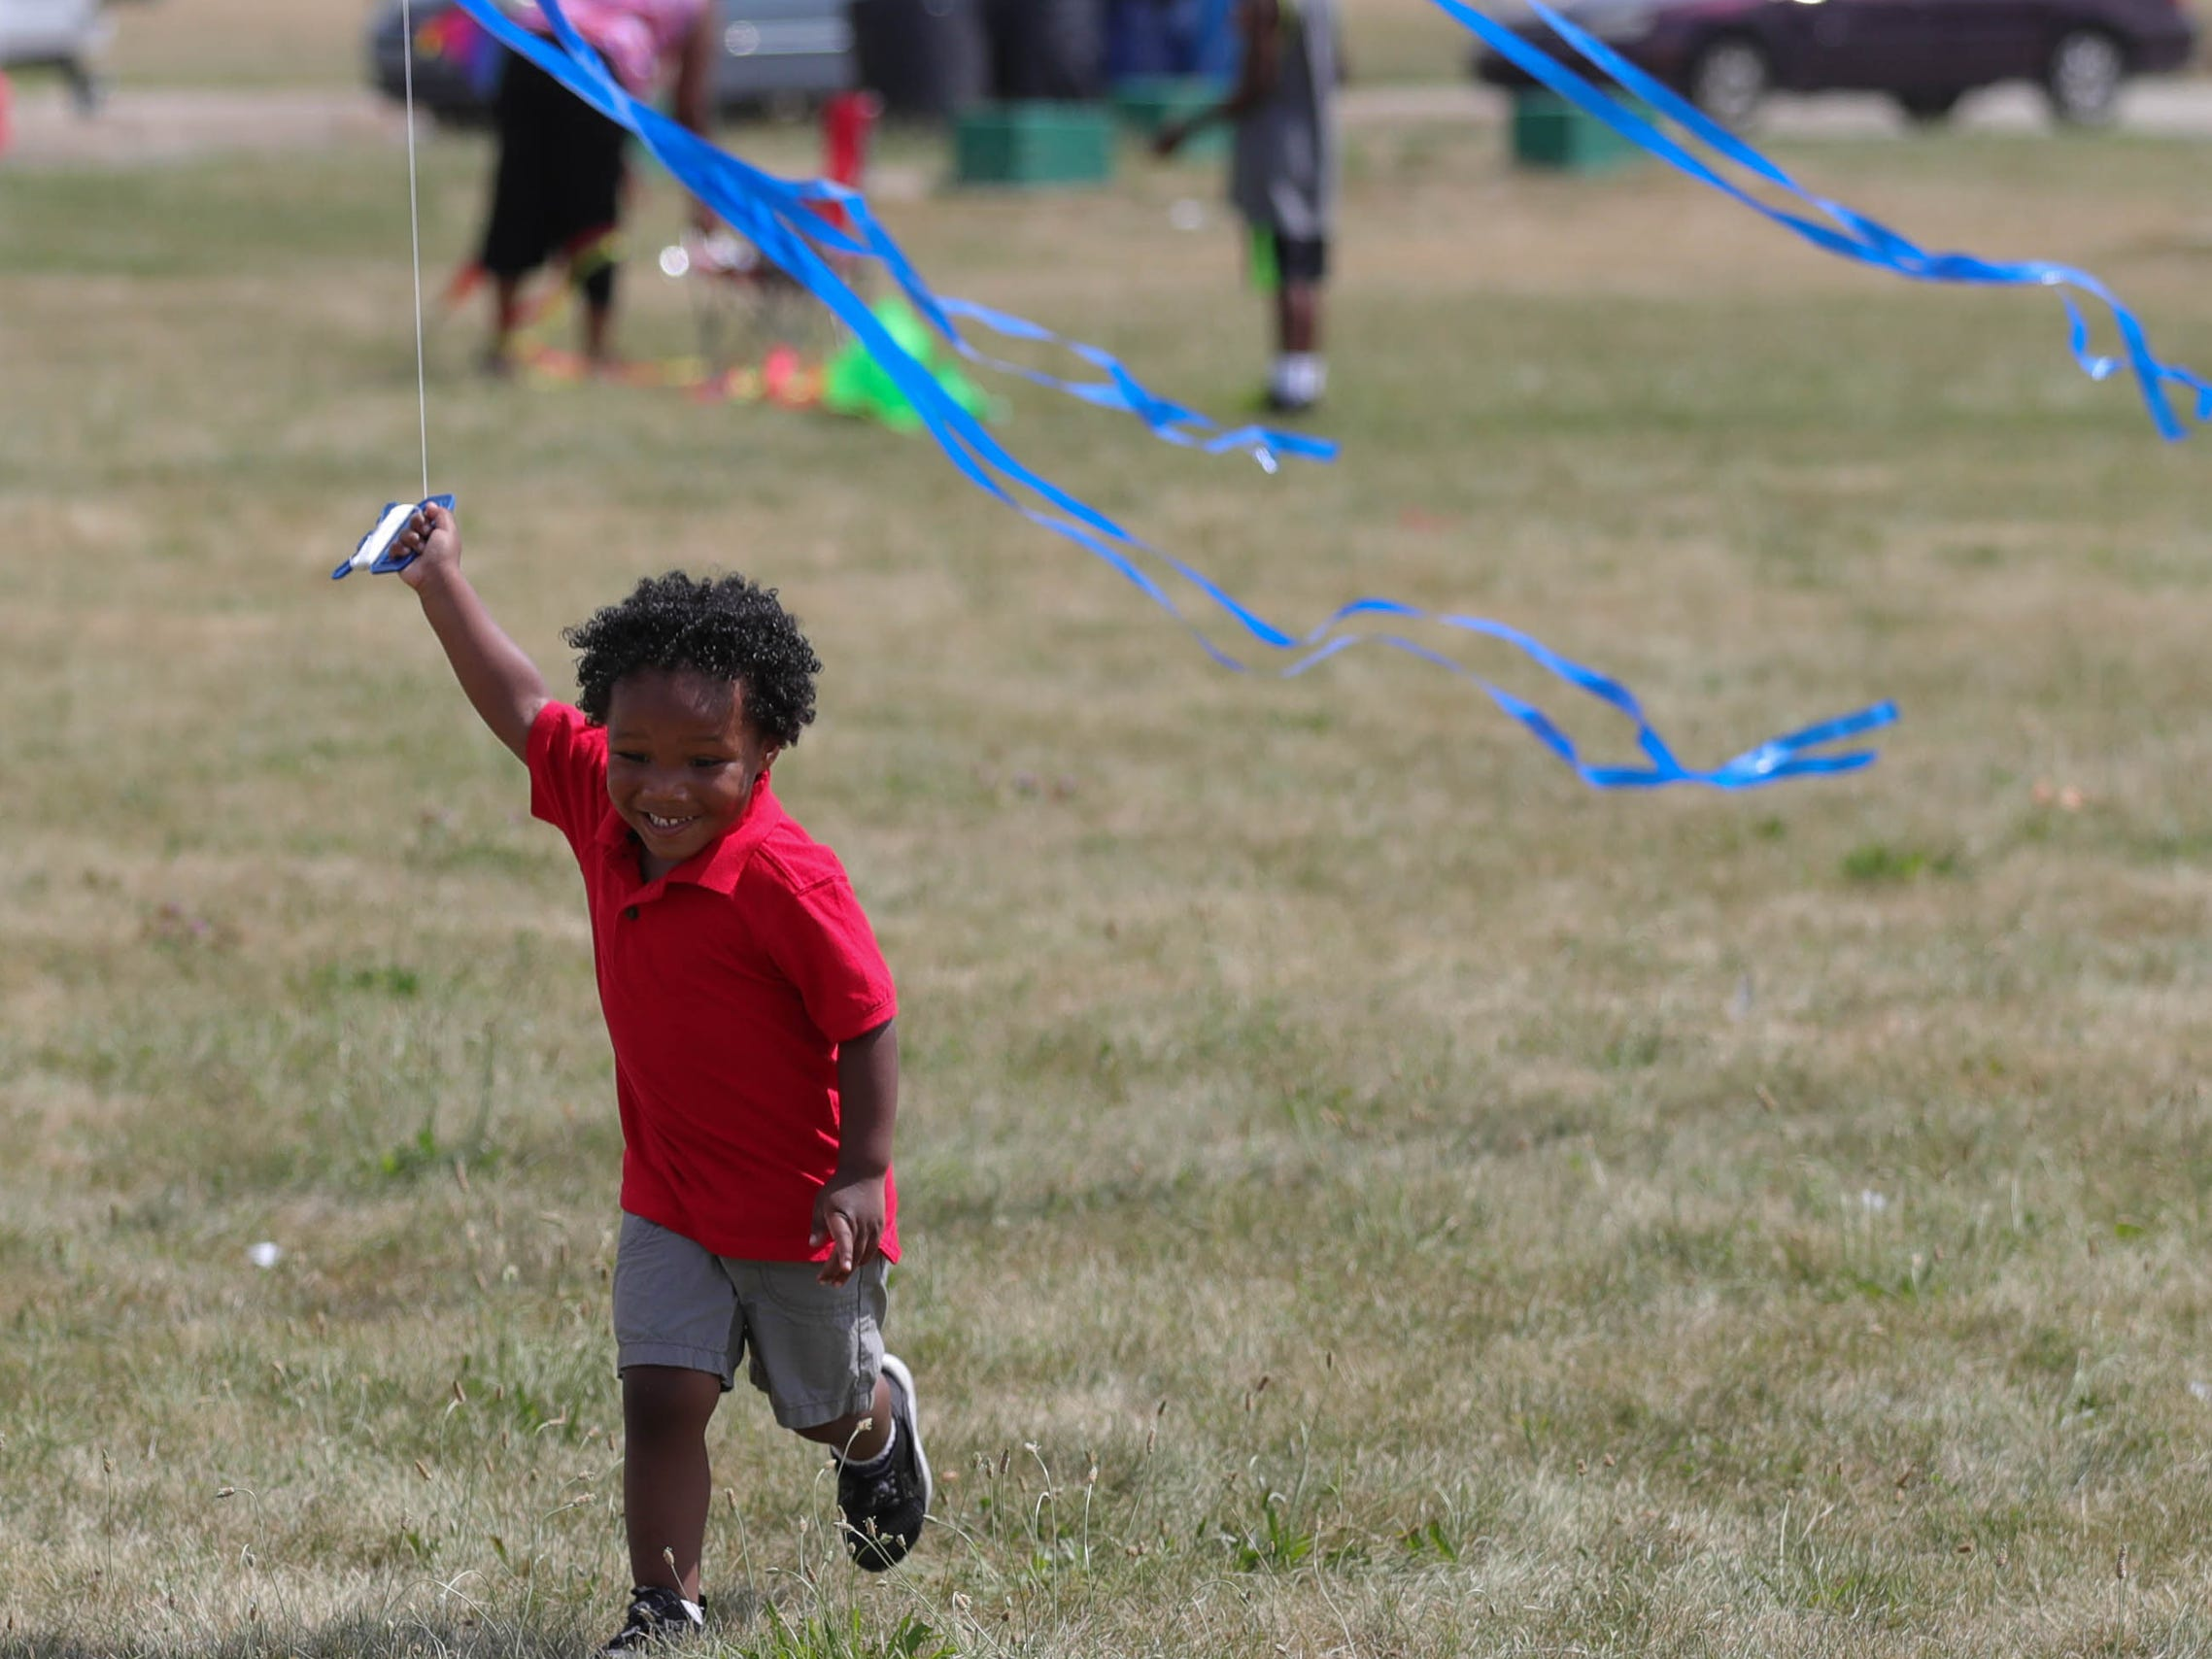 Cameron Harris tries to get his kite airborne during the Detroit Kite Festival on Belle Isle Sunday, July 15, 2018.